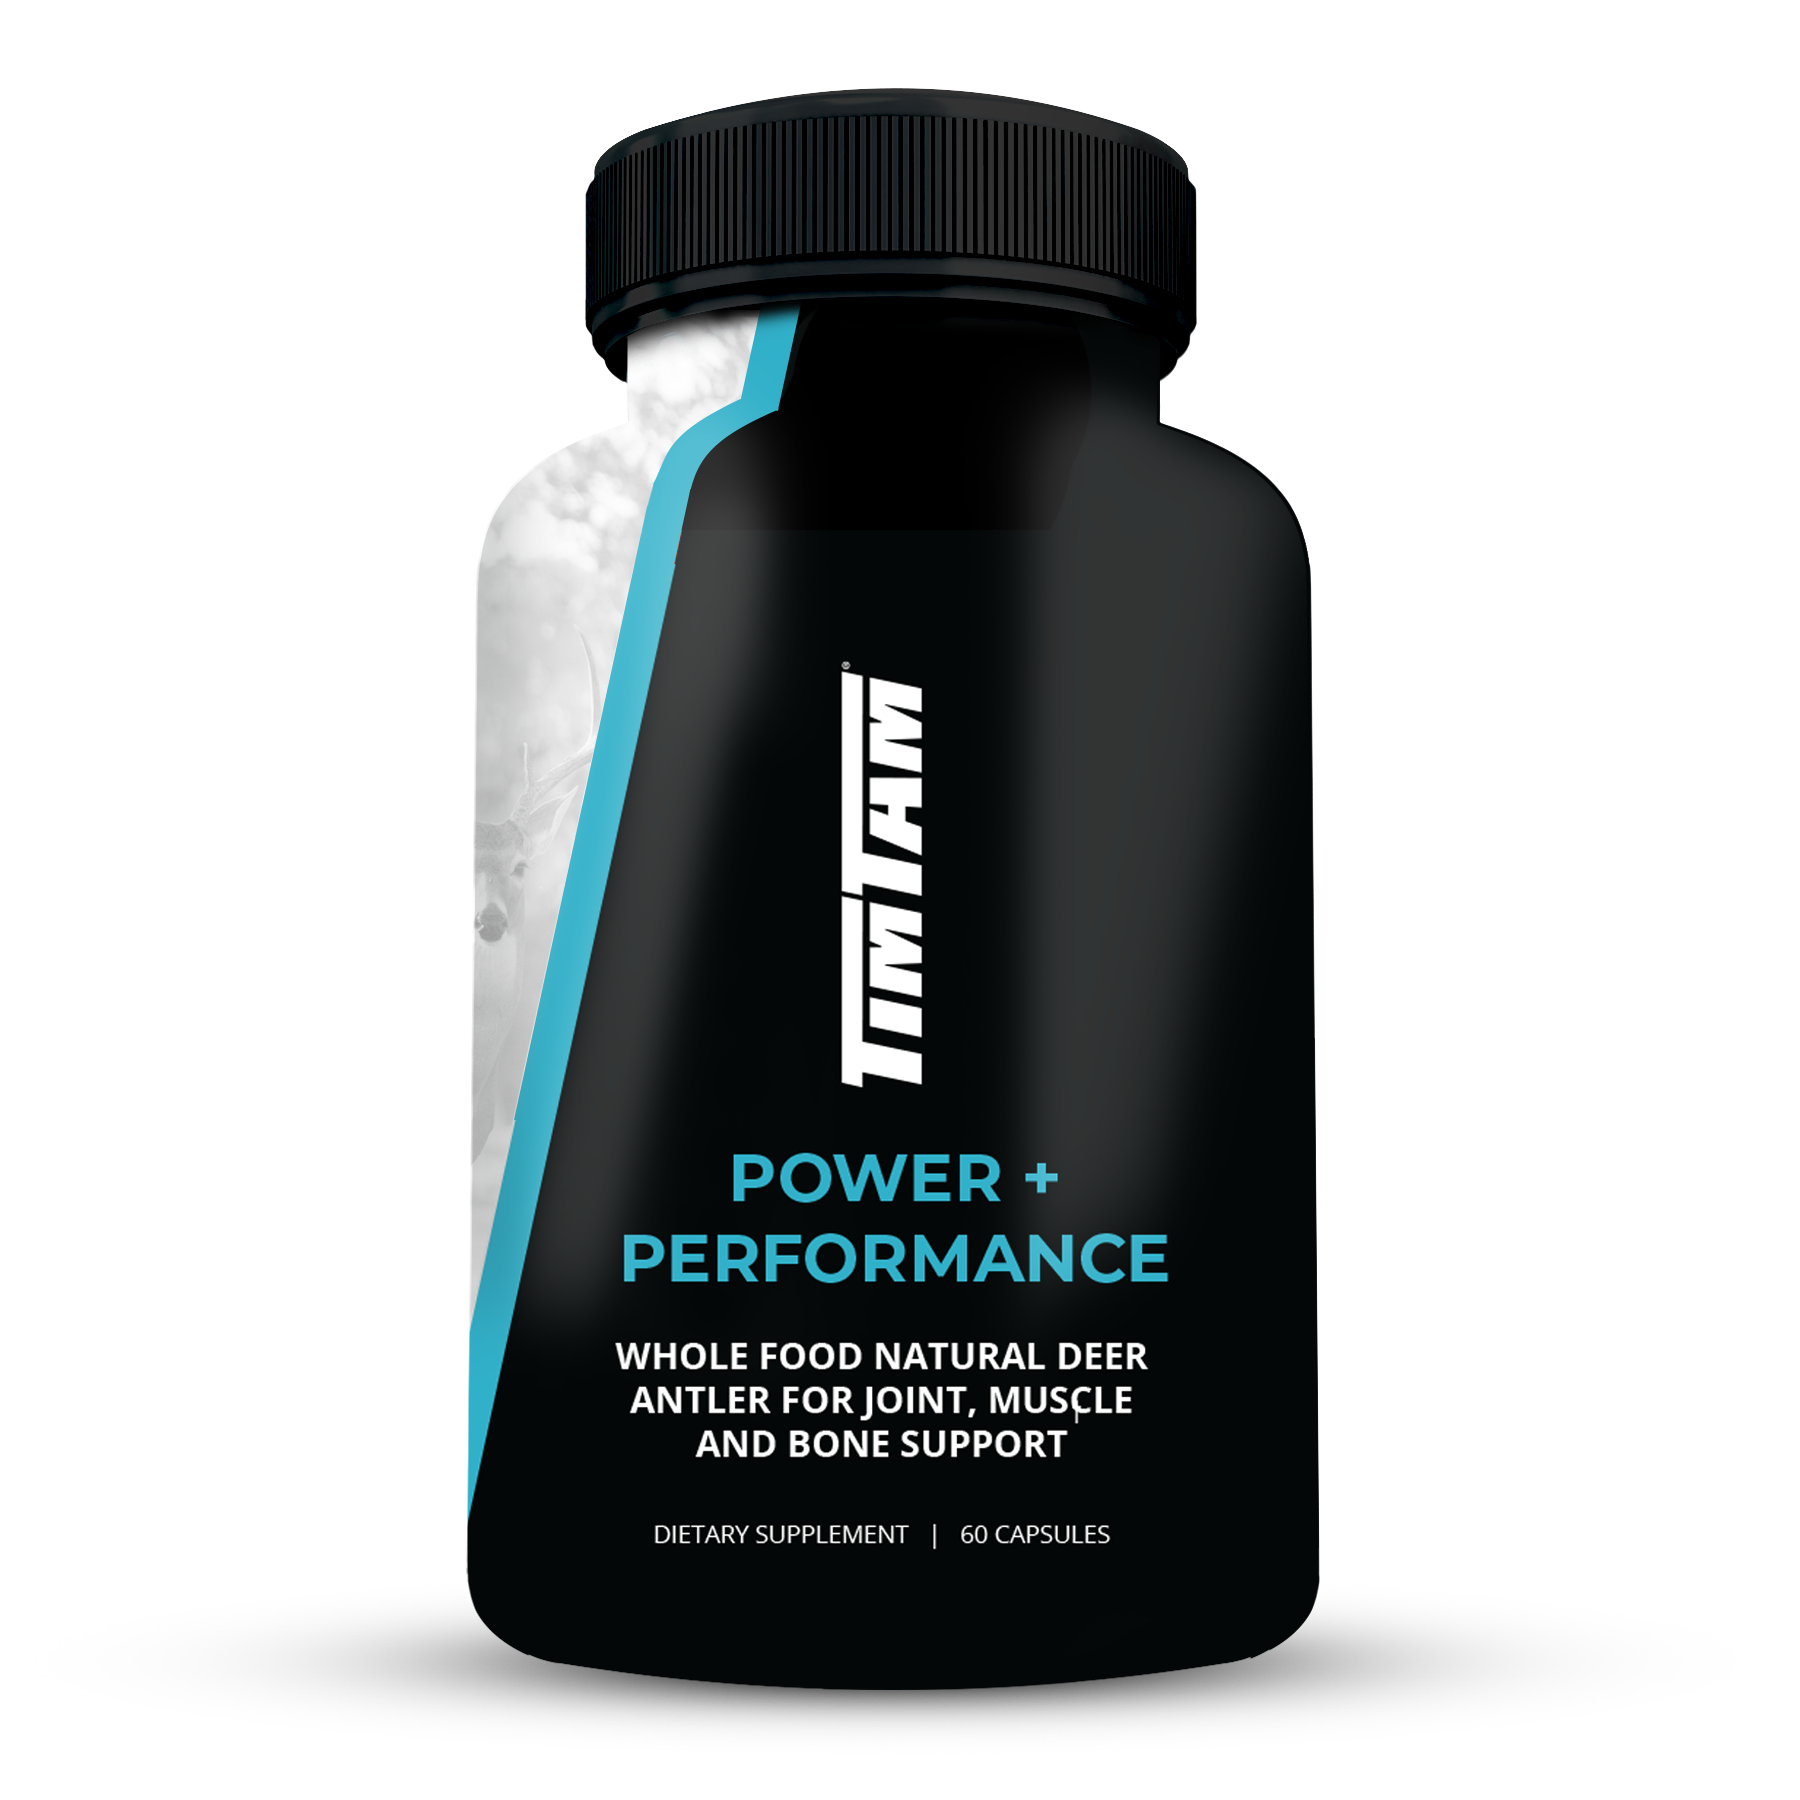 Power + Performance 90 Day Subscription